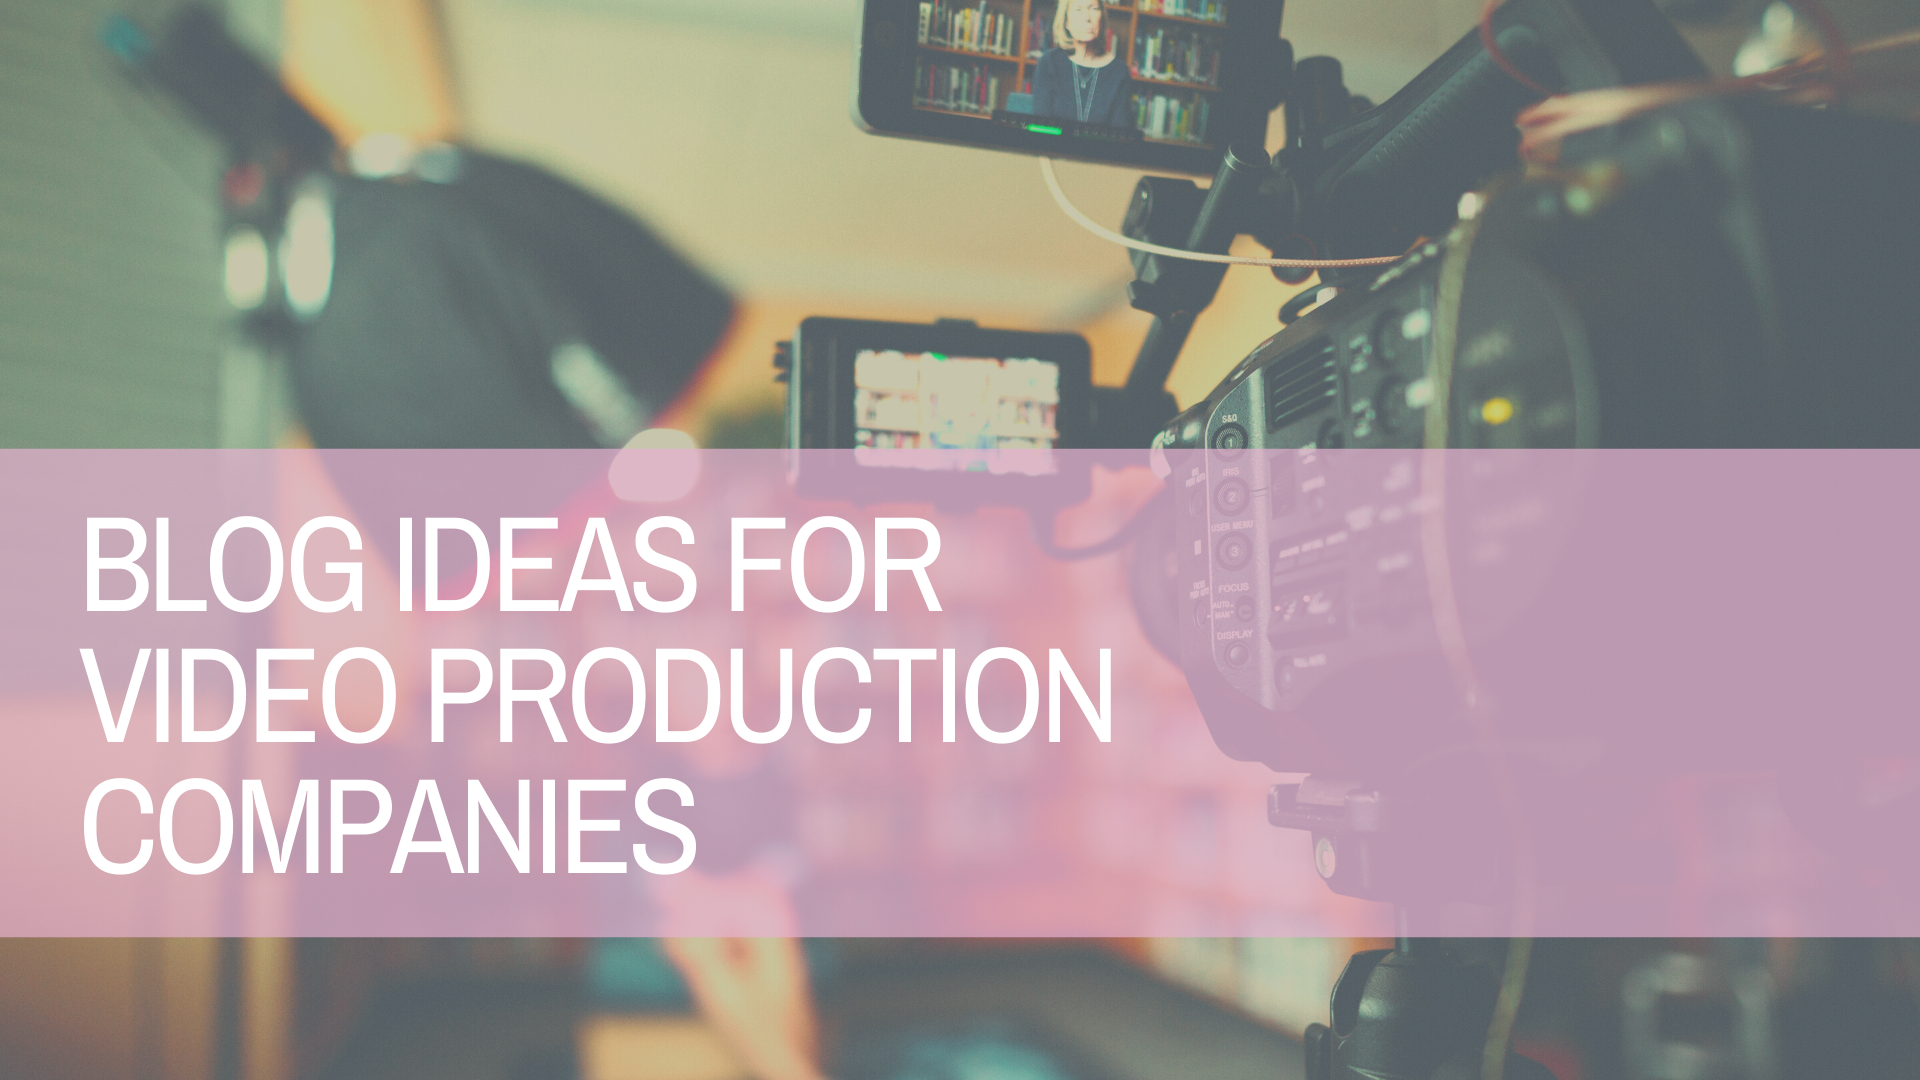 Blog Ideas For Video Production Companies